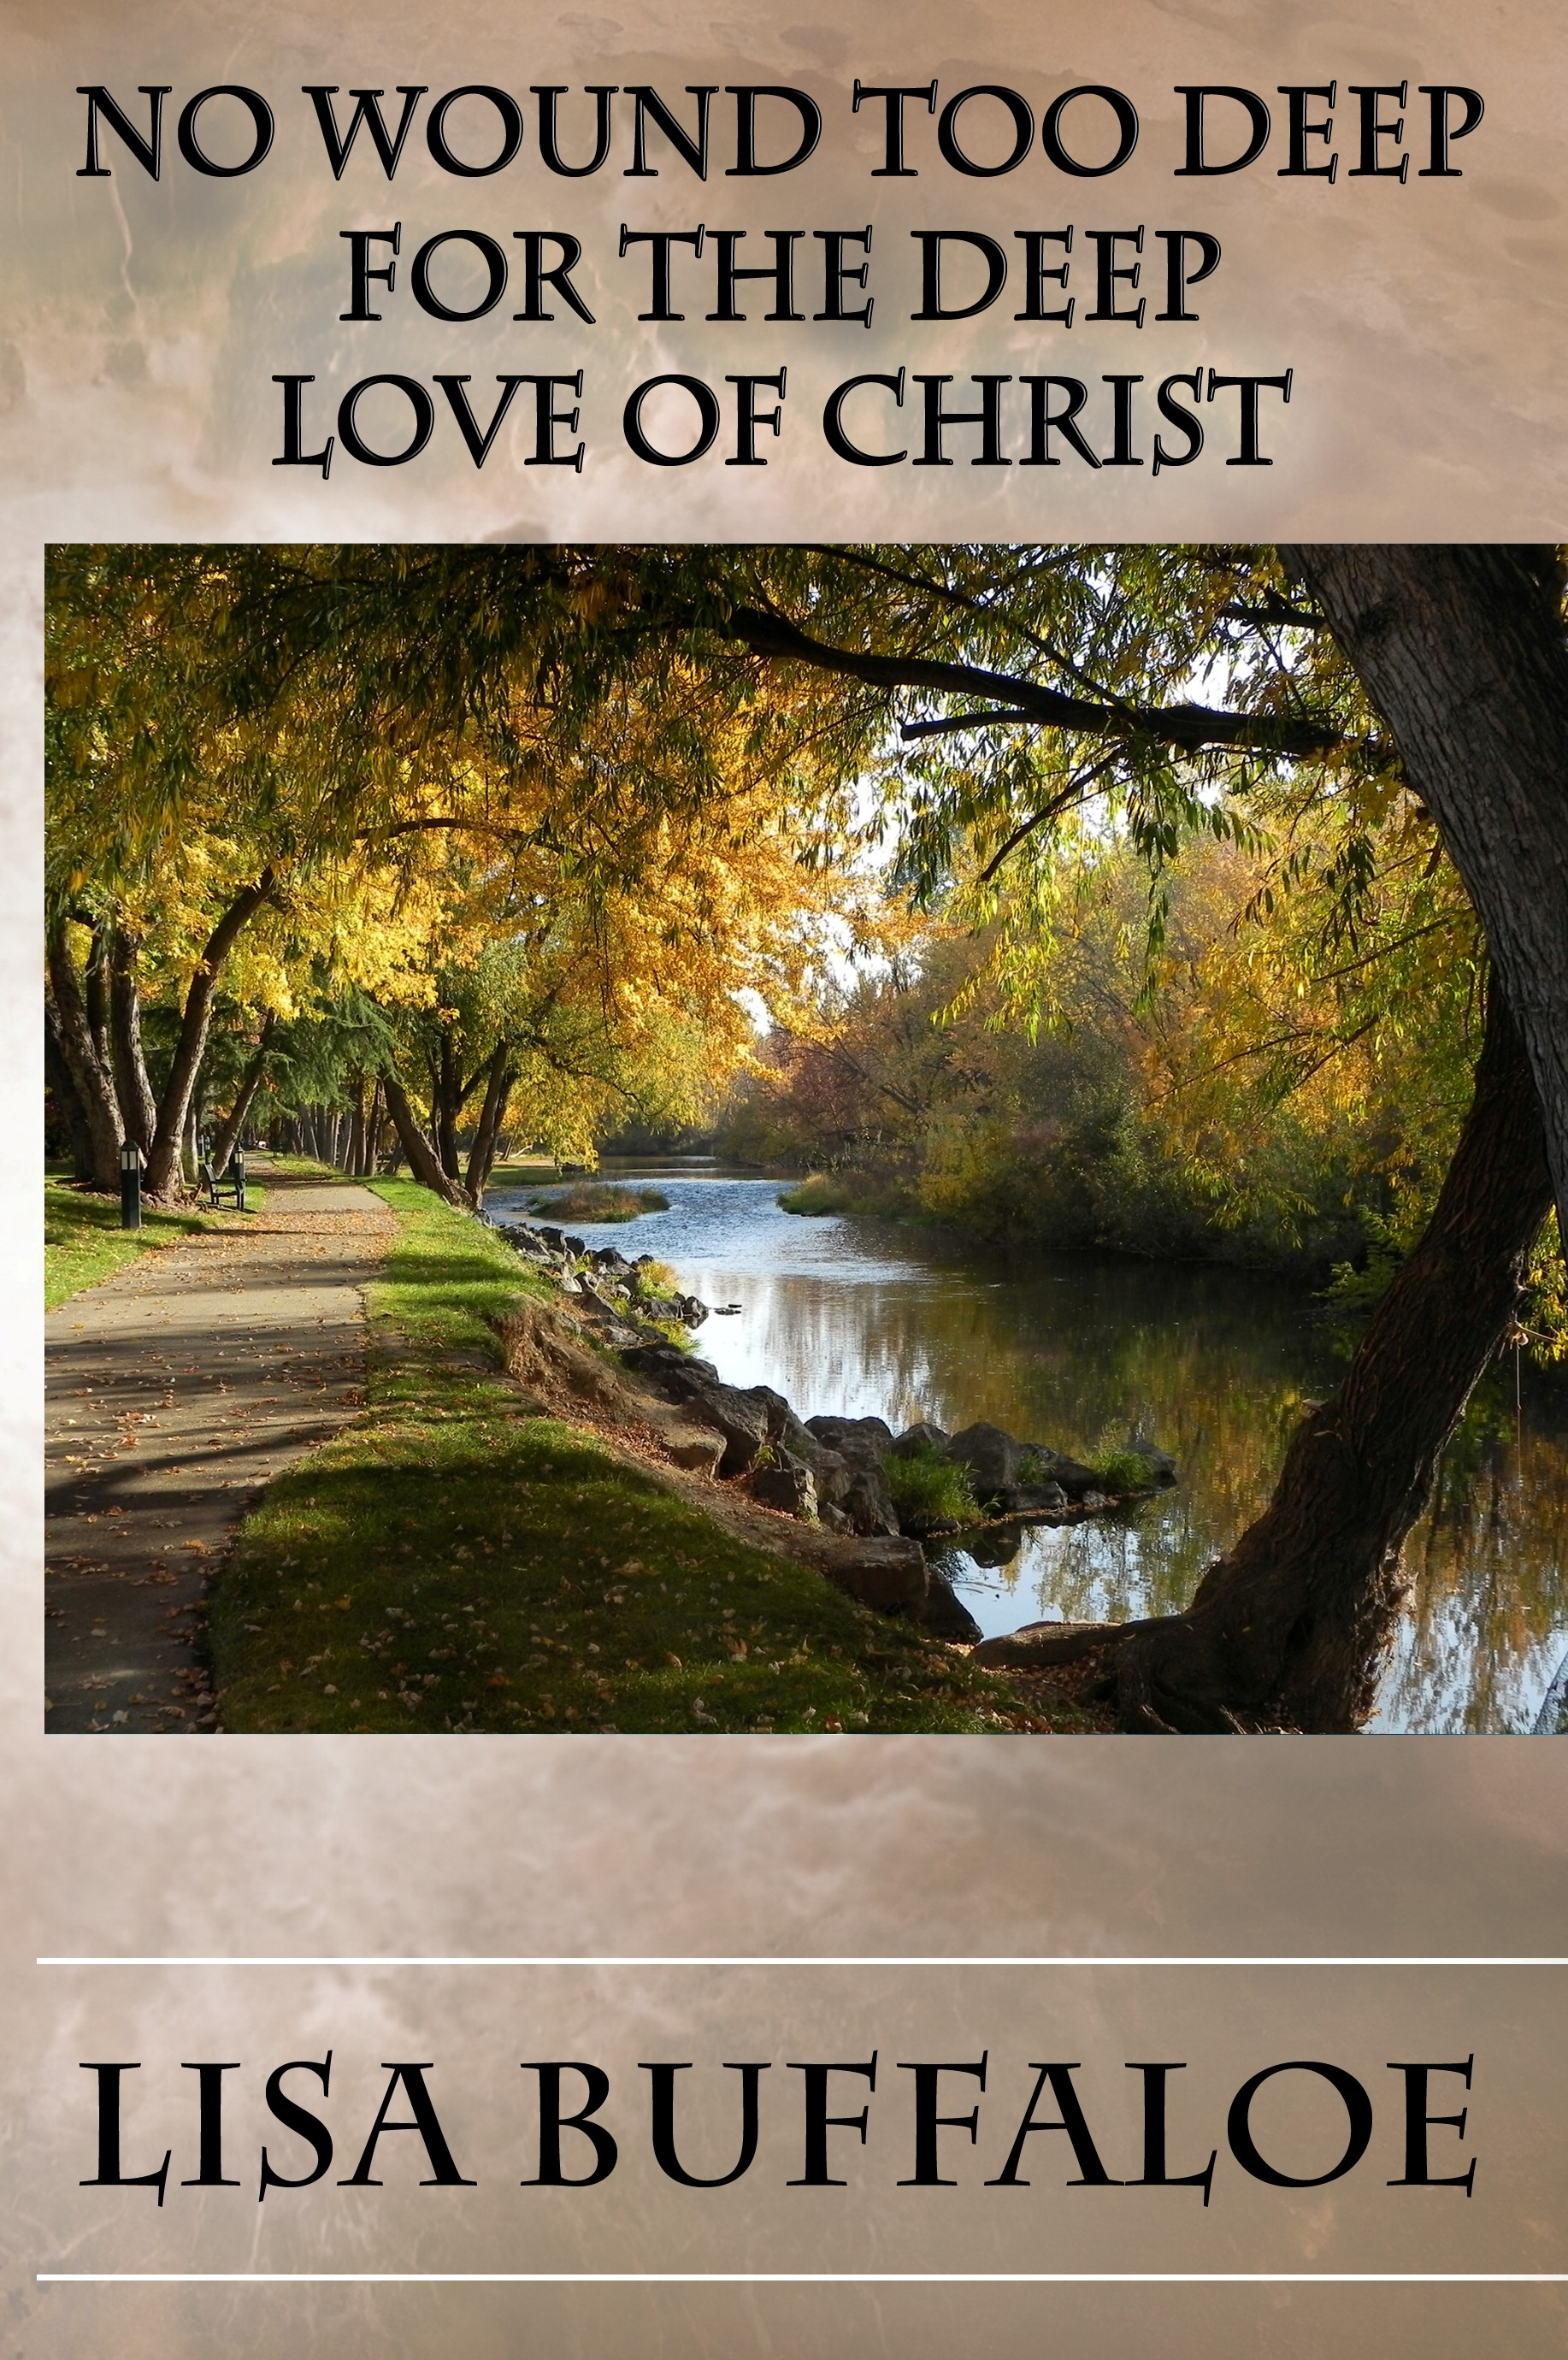 No Wound Too Deep For The Deep Love of Christ by Lisa Buffaloe